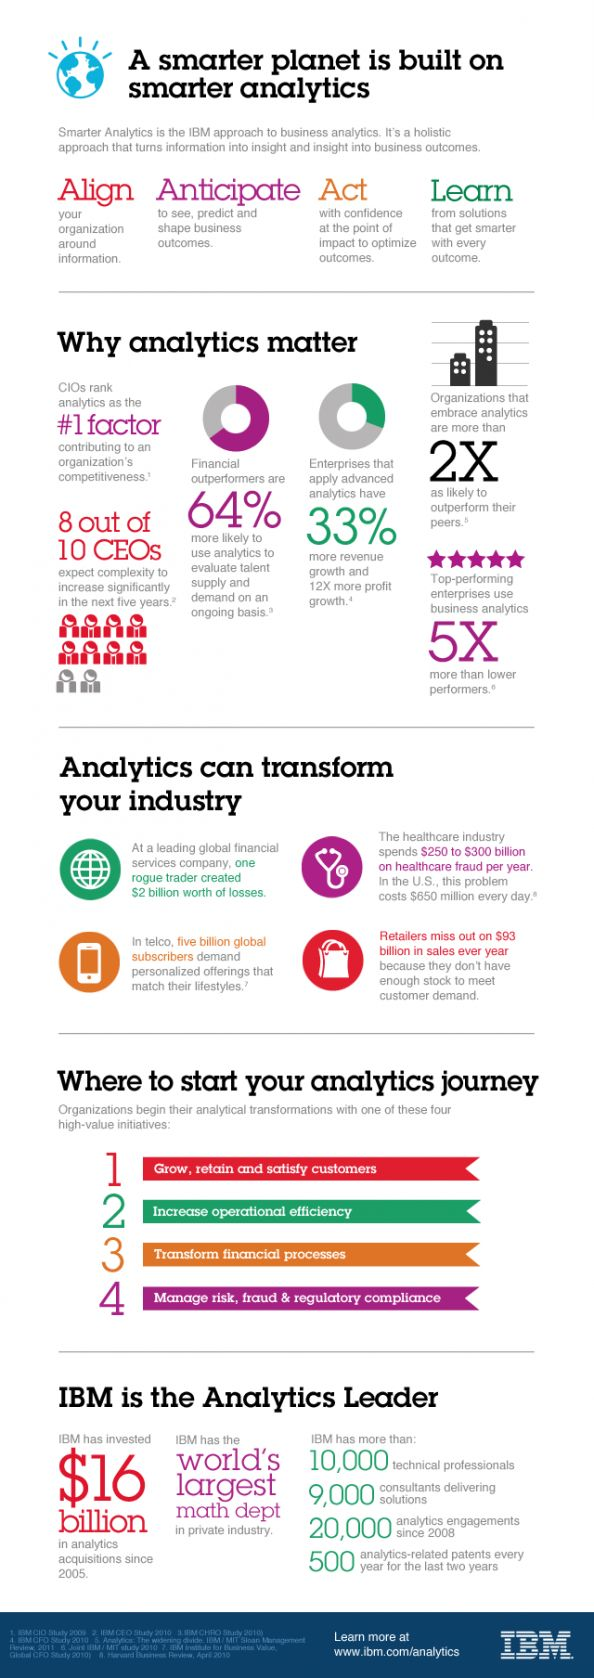 "An infographic done by IBM on ""A smarter planet is built on smarter analytics"". The infographic displays the IBM approach to business #Analytics. The holistic approach turns information into insight and insight into business outcomes. IBM answers the questions why #Analytics matter and how they can transform your industry. 9/10"